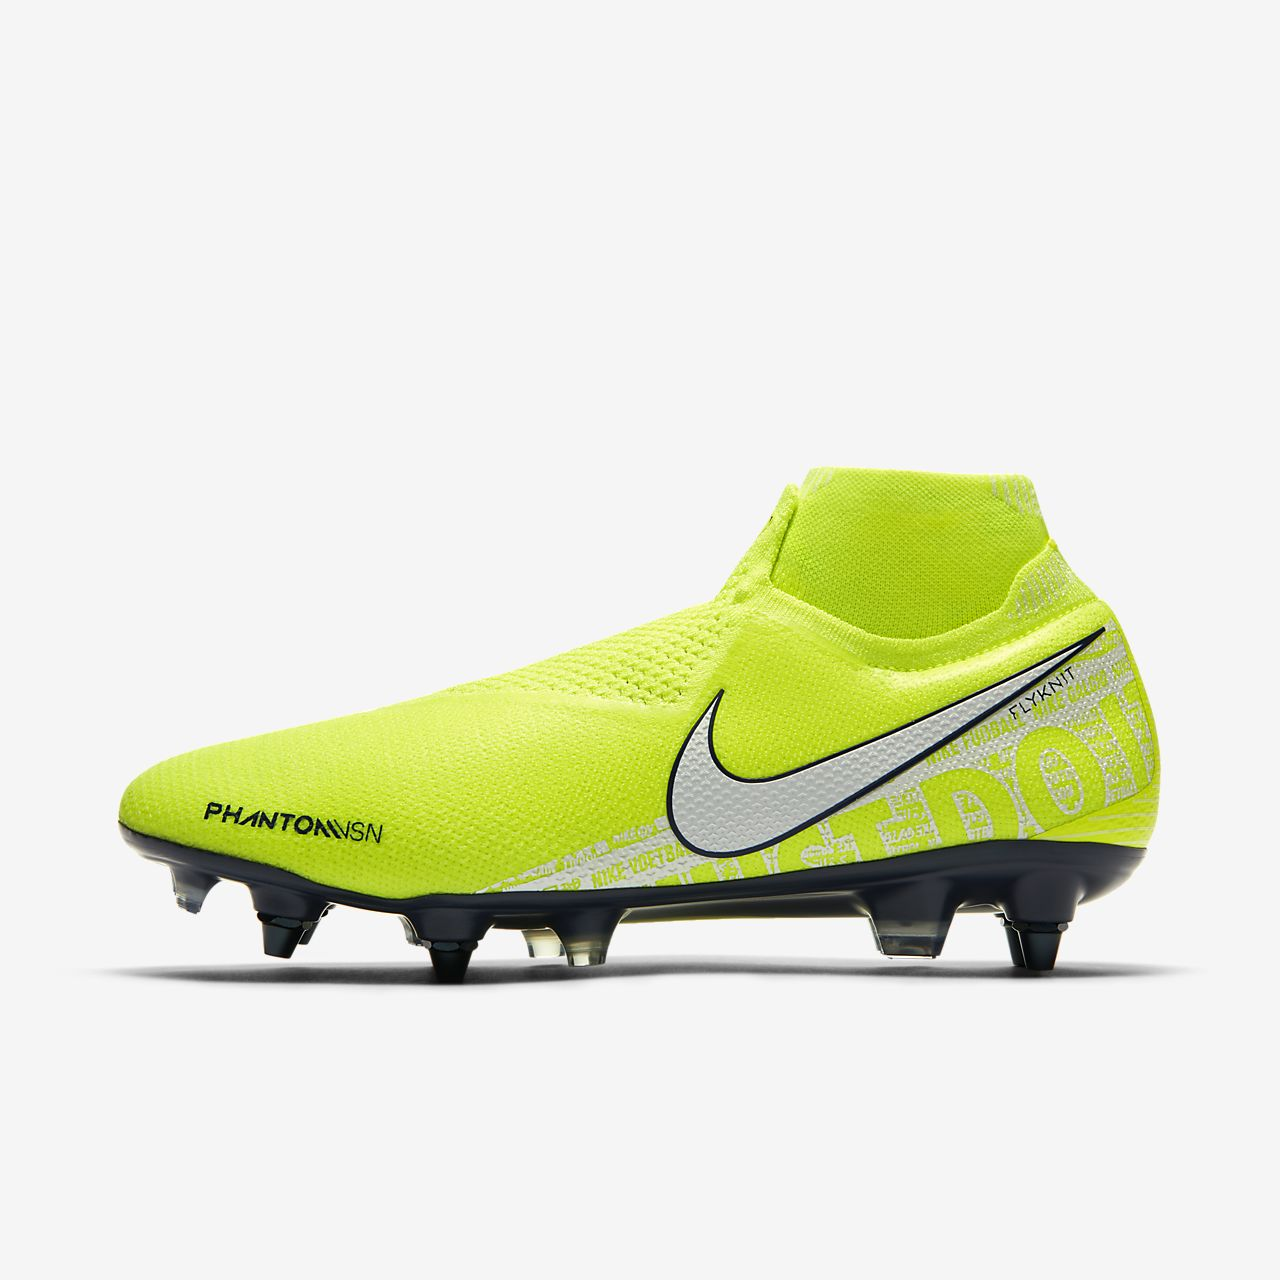 Chaussure de football à crampons Nike Phantom Vision Elite Dynamic Fit Anti-Clog SG-PRO